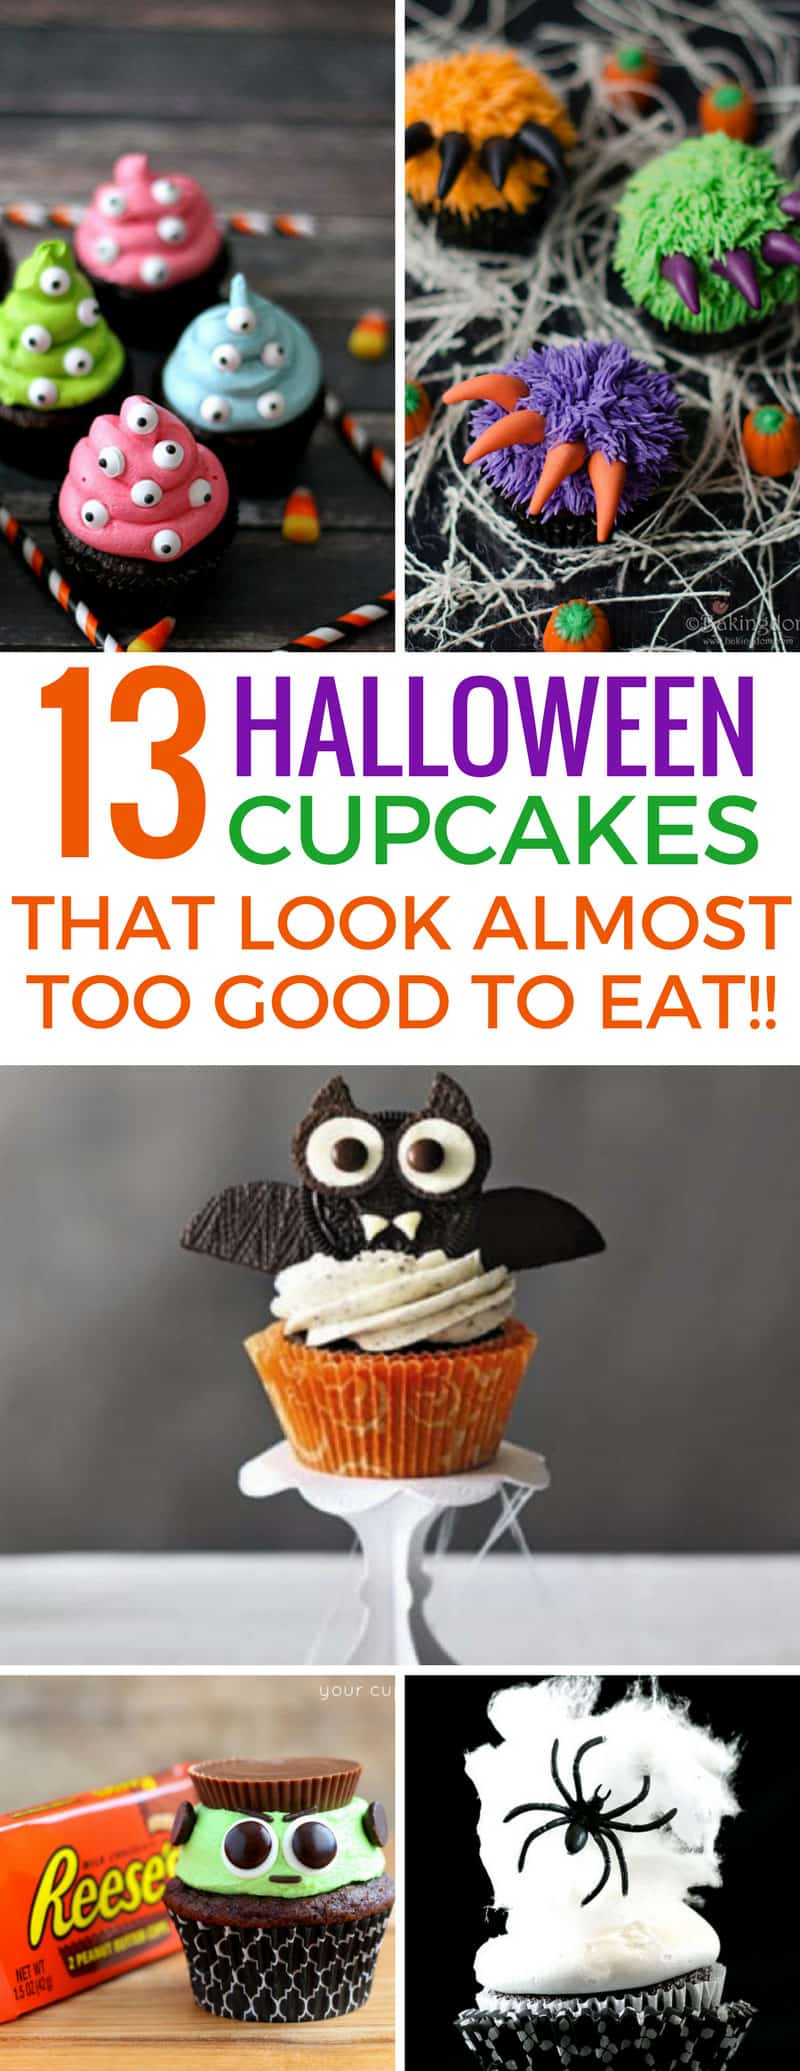 Loving these Halloween cupcakes and they will go down a storm at my kid's party! Thanks for sharing!